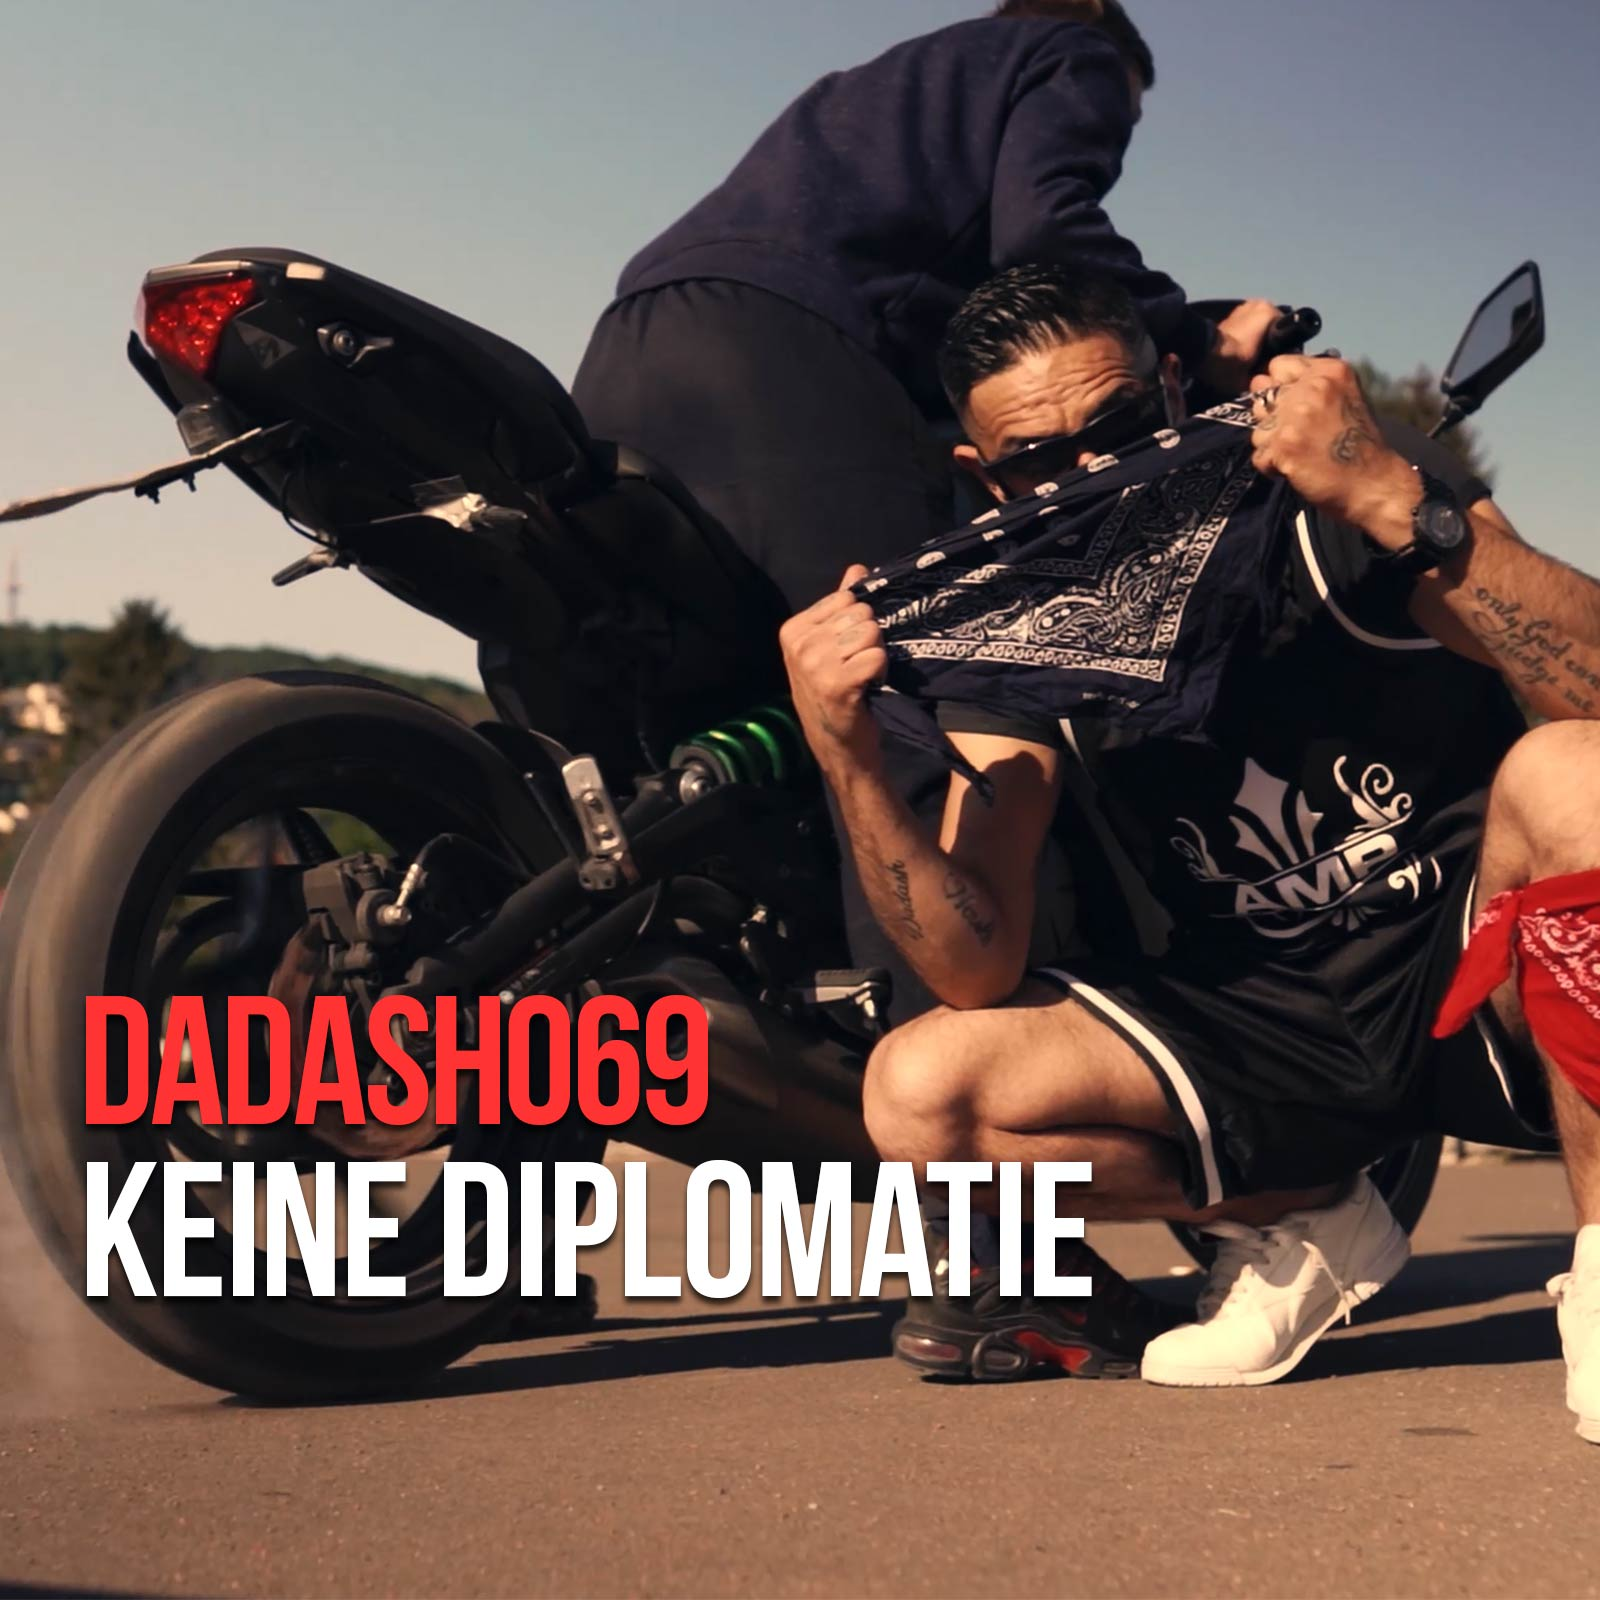 Upcoming: Dadash069 - Keine Diplomatie